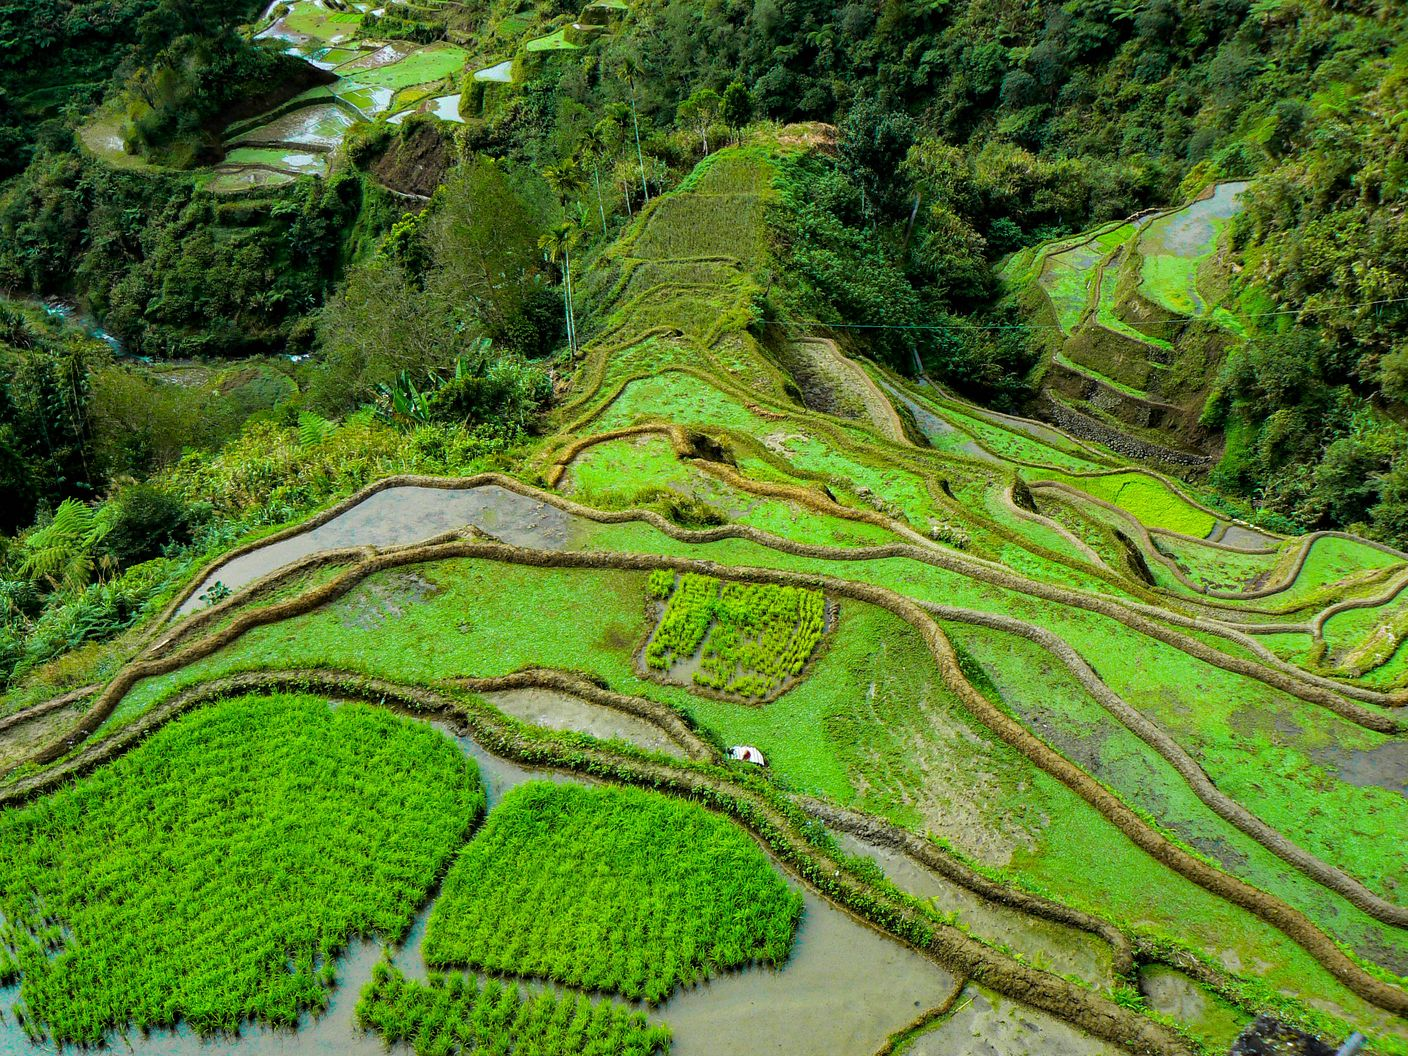 Aerial view of terraced paddy fields carved along mountainsides in Ifugao, Philippines